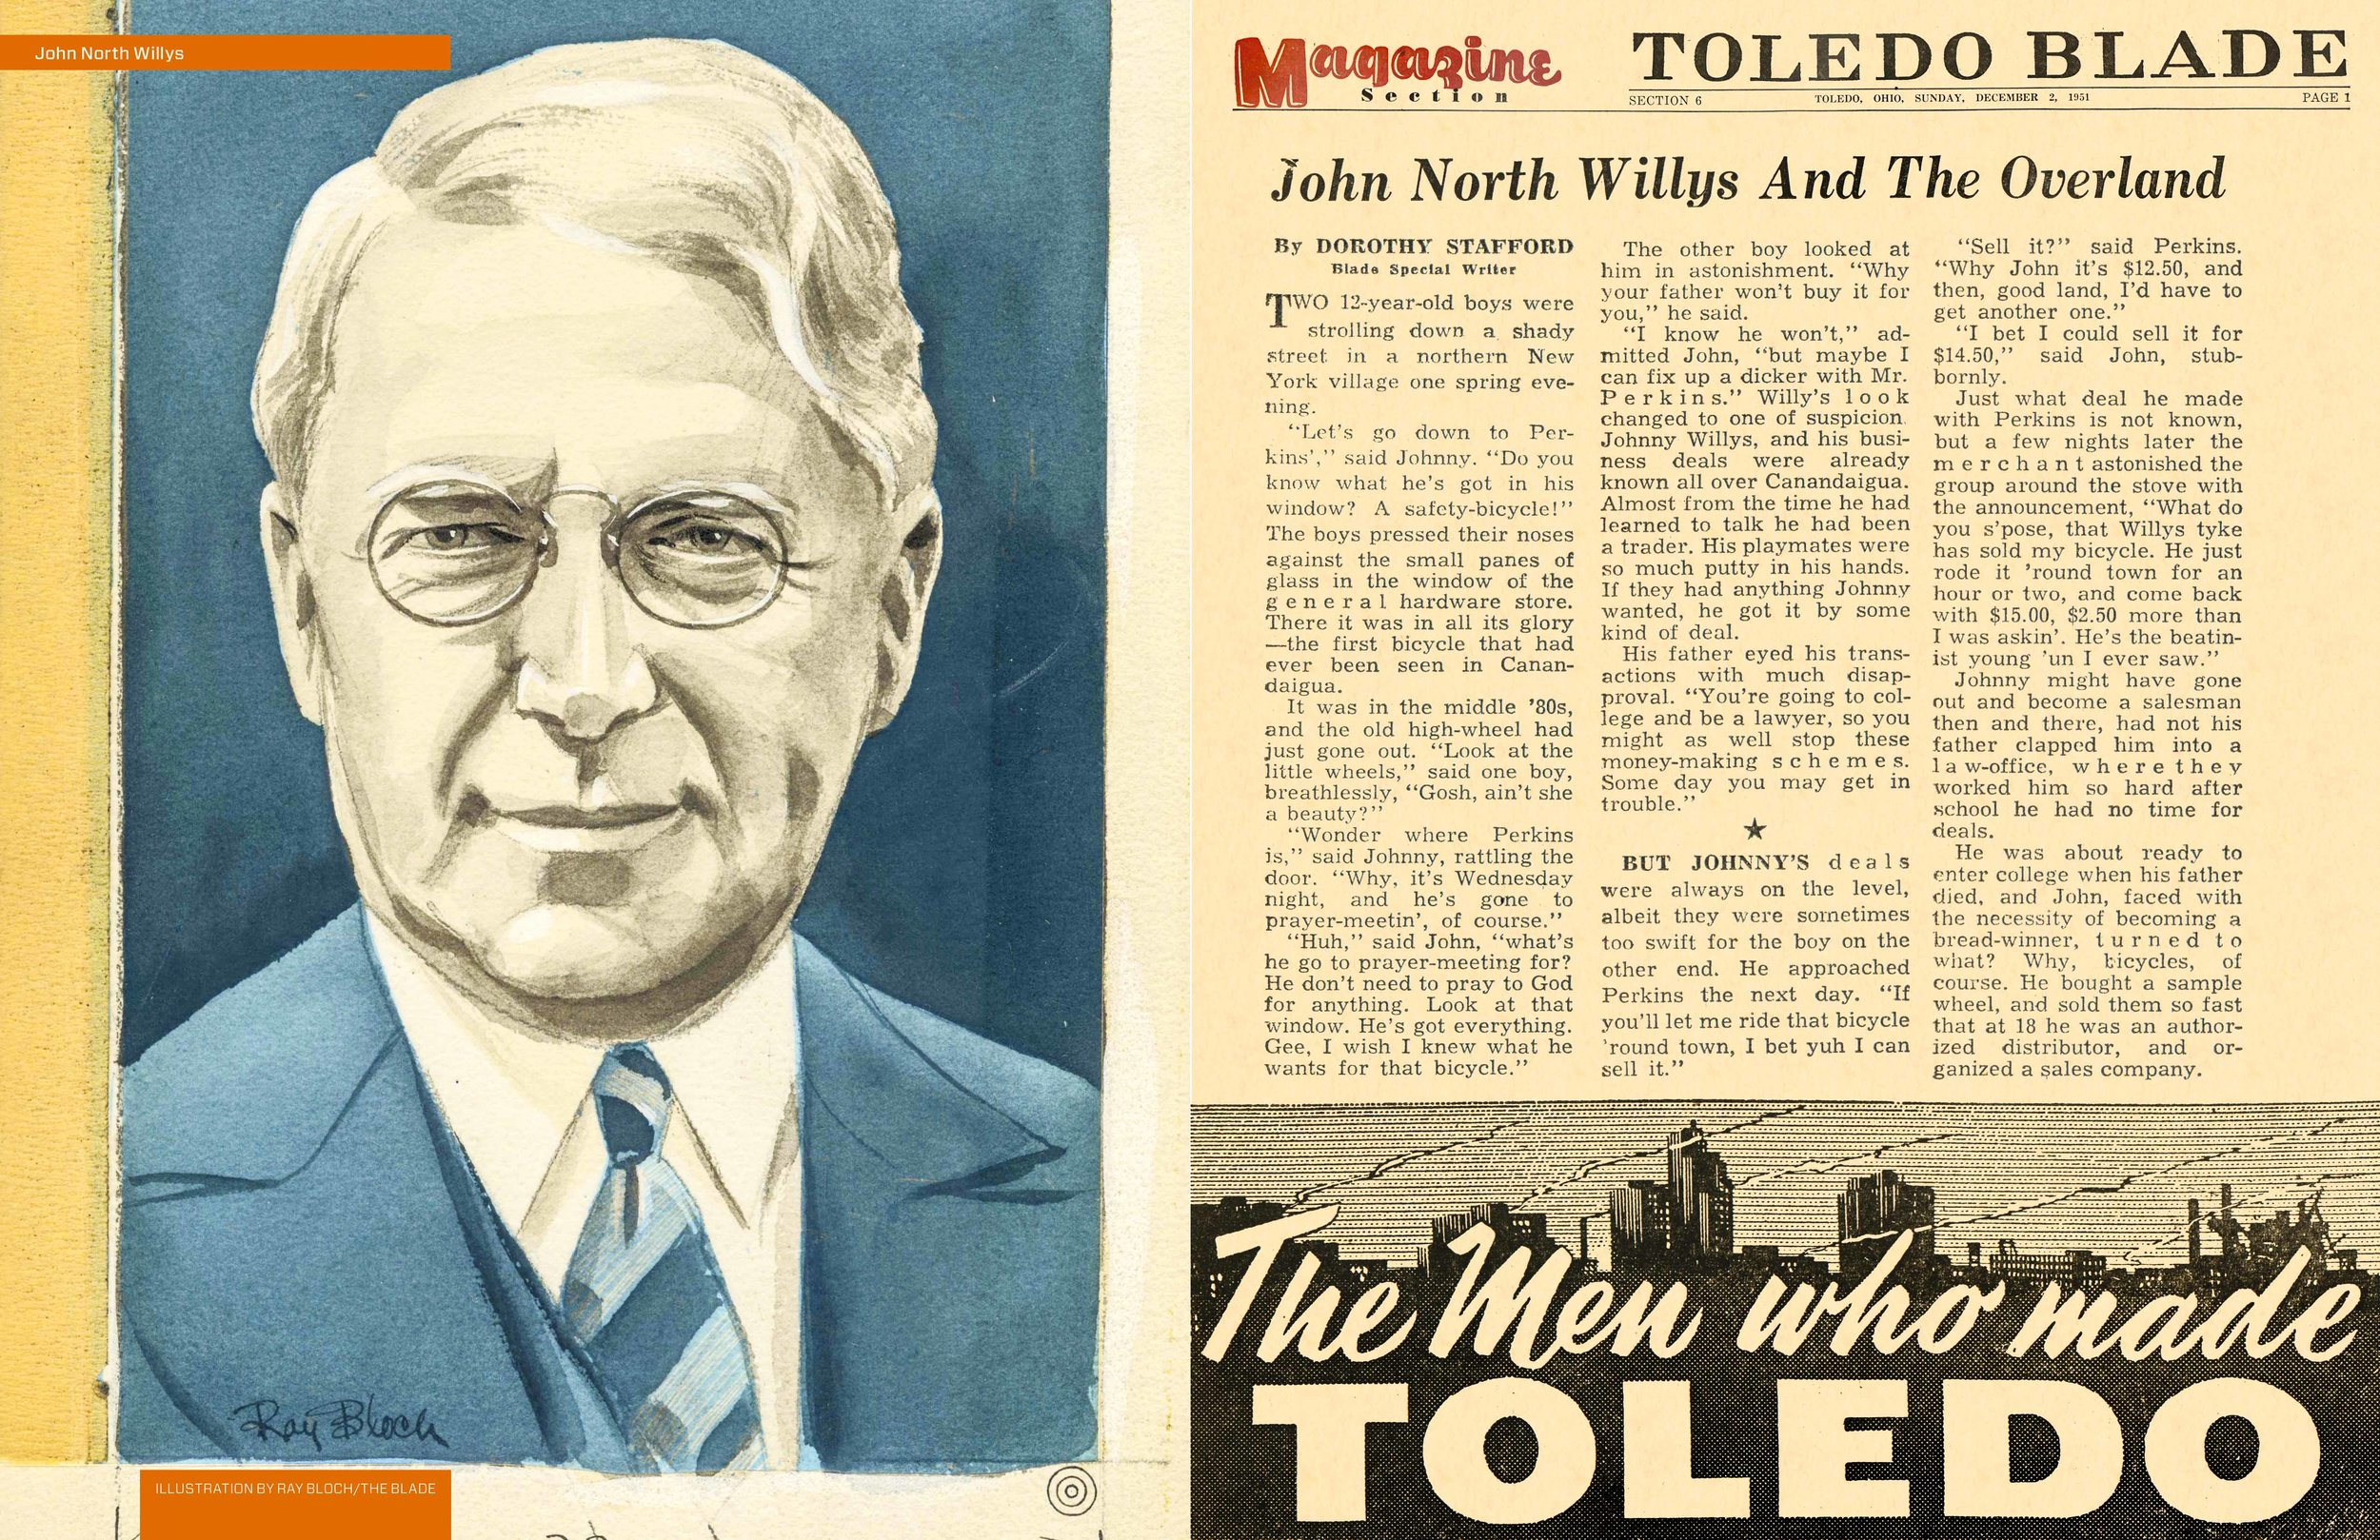 John North Willys, a shrewd business man and Toledo visionary, historically profiled by The Blade.